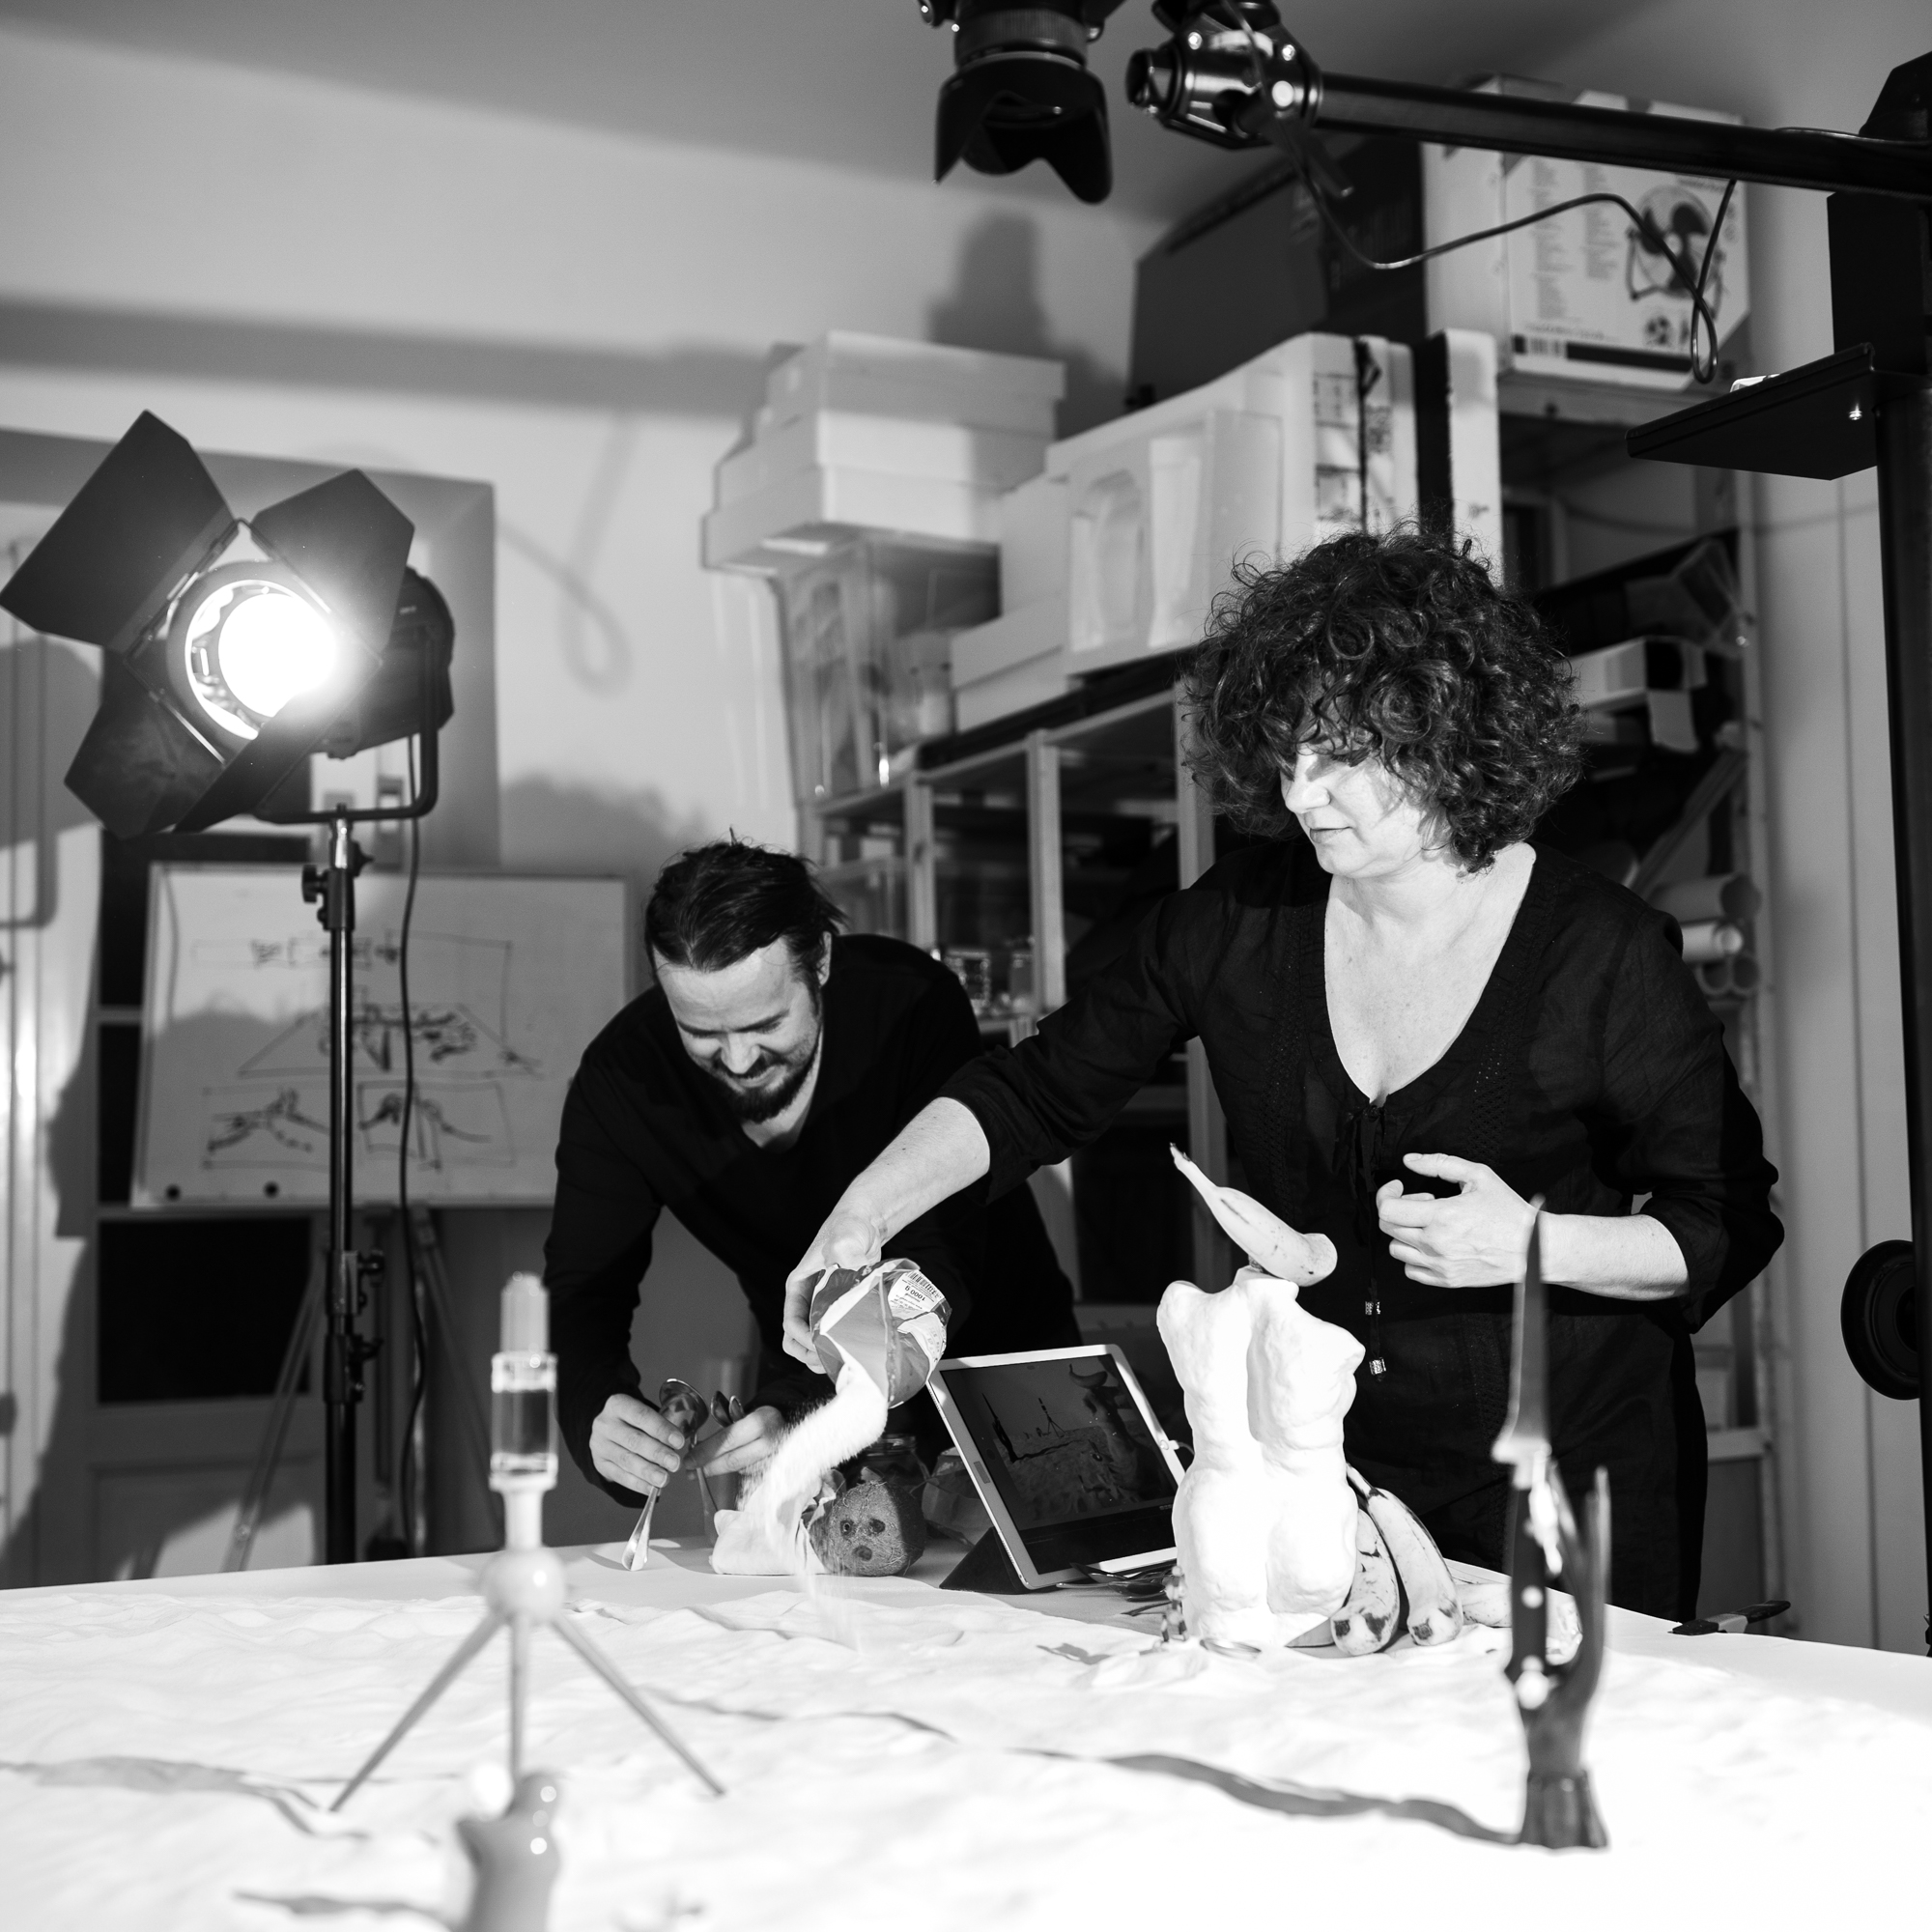 Behind the scenes of foodlydoodlydoo's vegan banana bread recipe. The photo shows photographer and stylist preparing the scene.